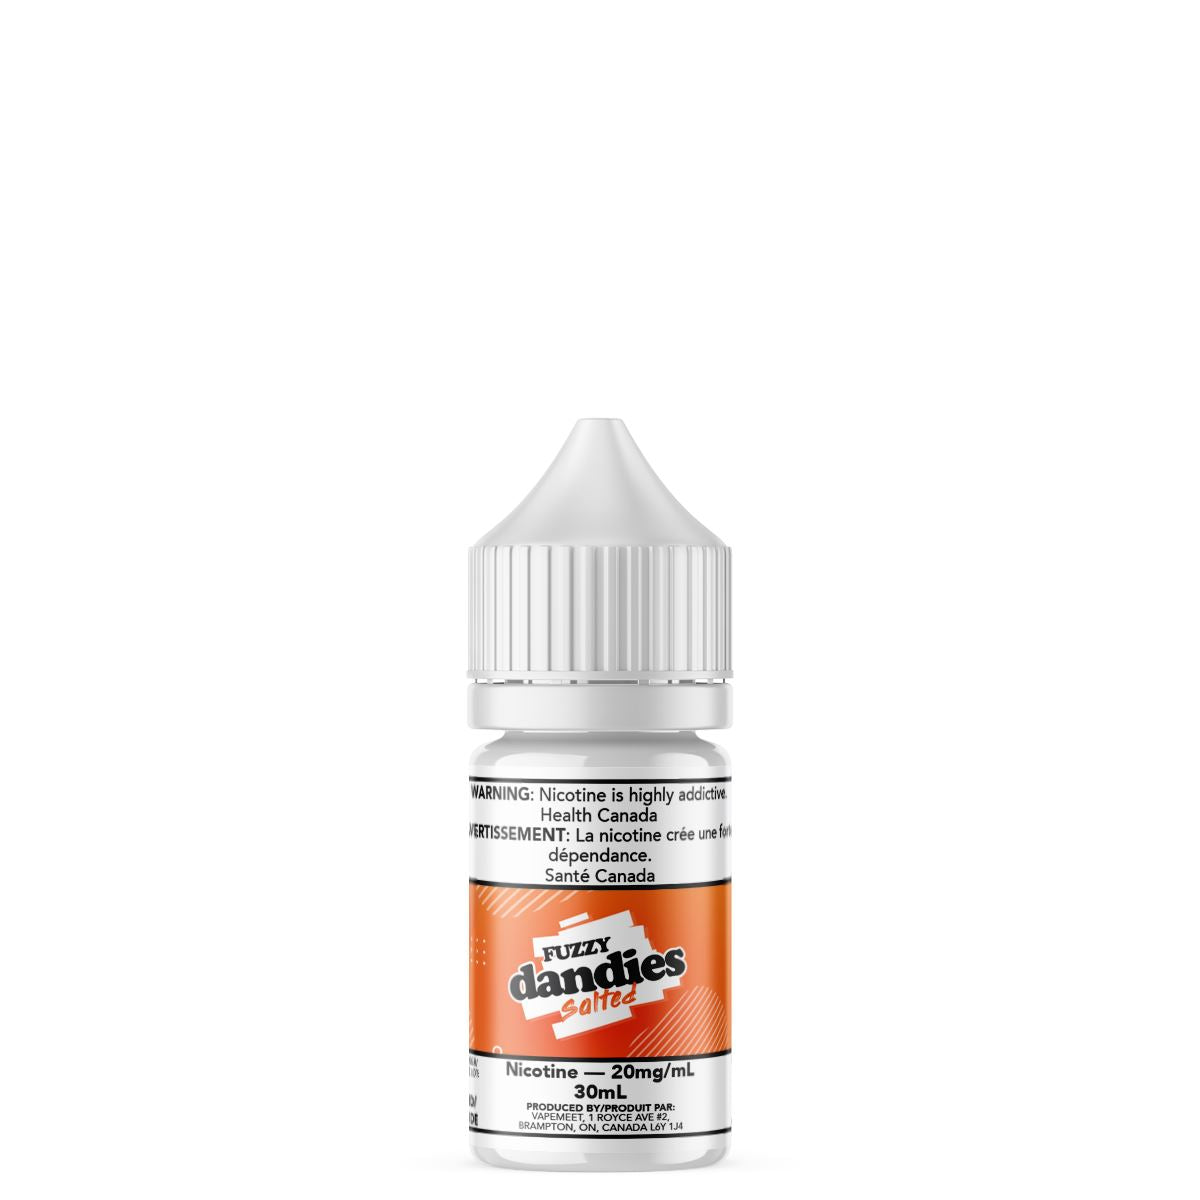 Dandies Salted - Fuzzy E-Liquid Dandies Salted 30mL 20 mg/mL